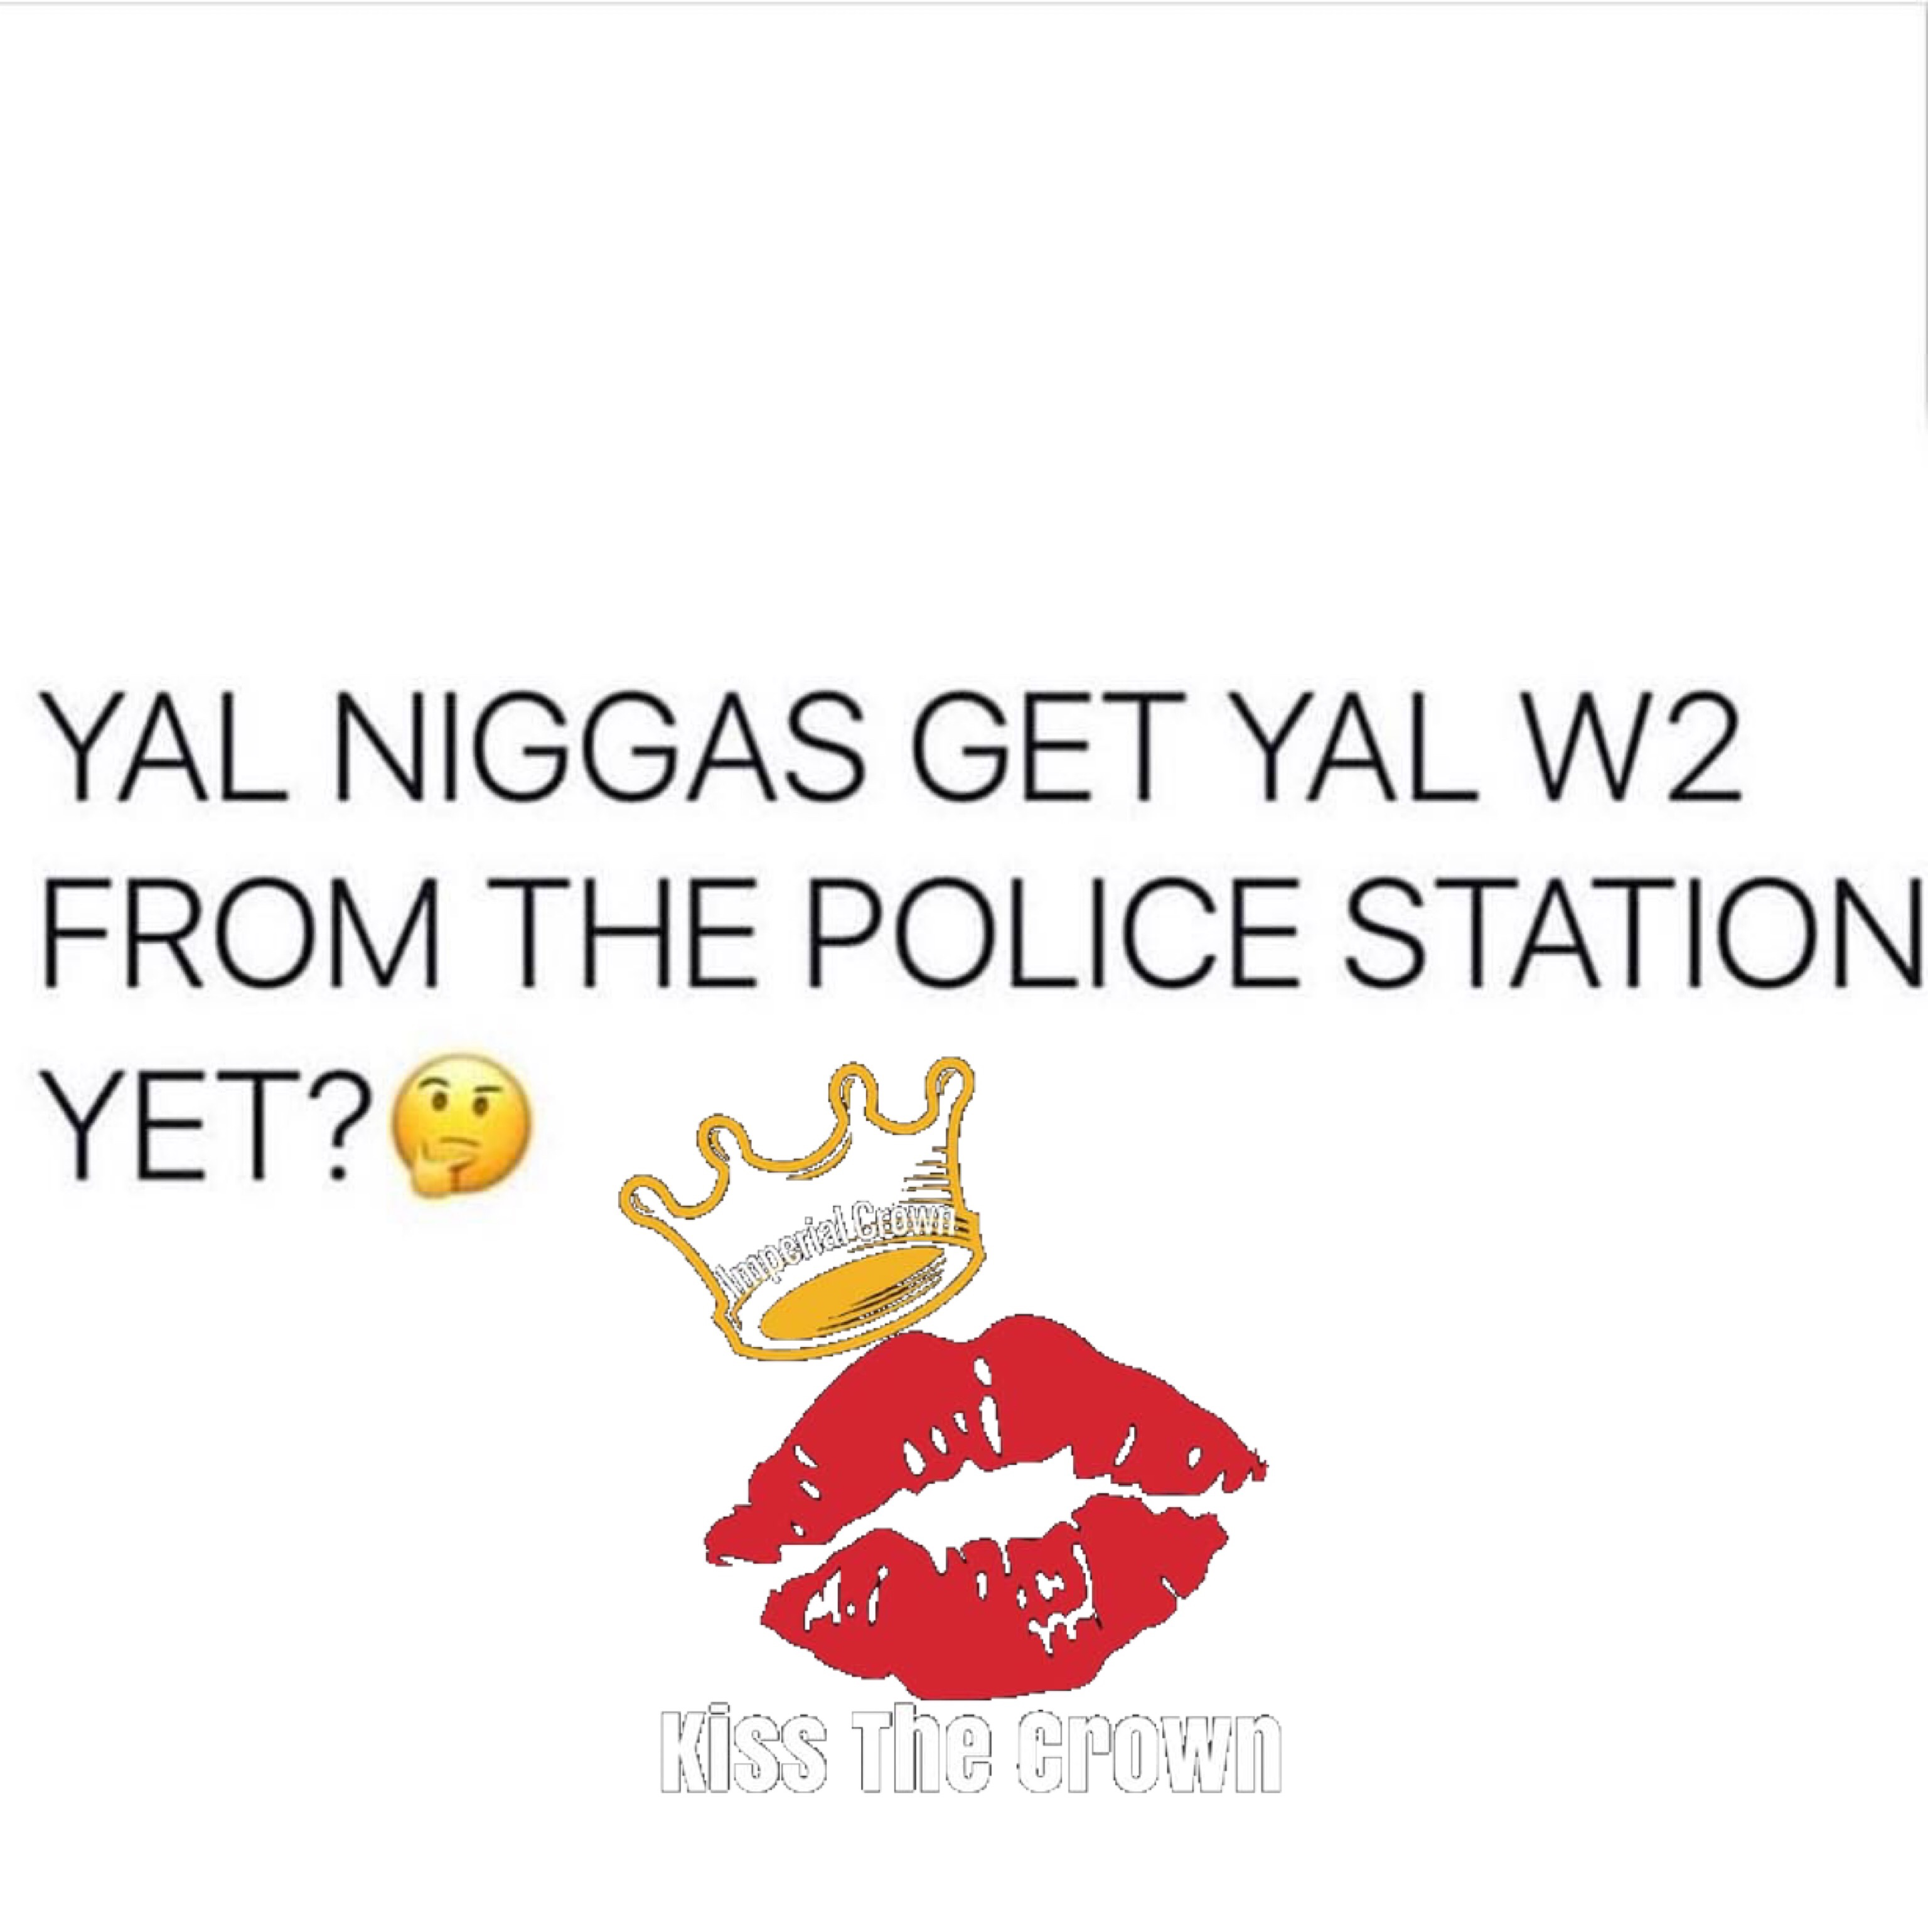 Y'all niggas get y'all W2 from the police station yet